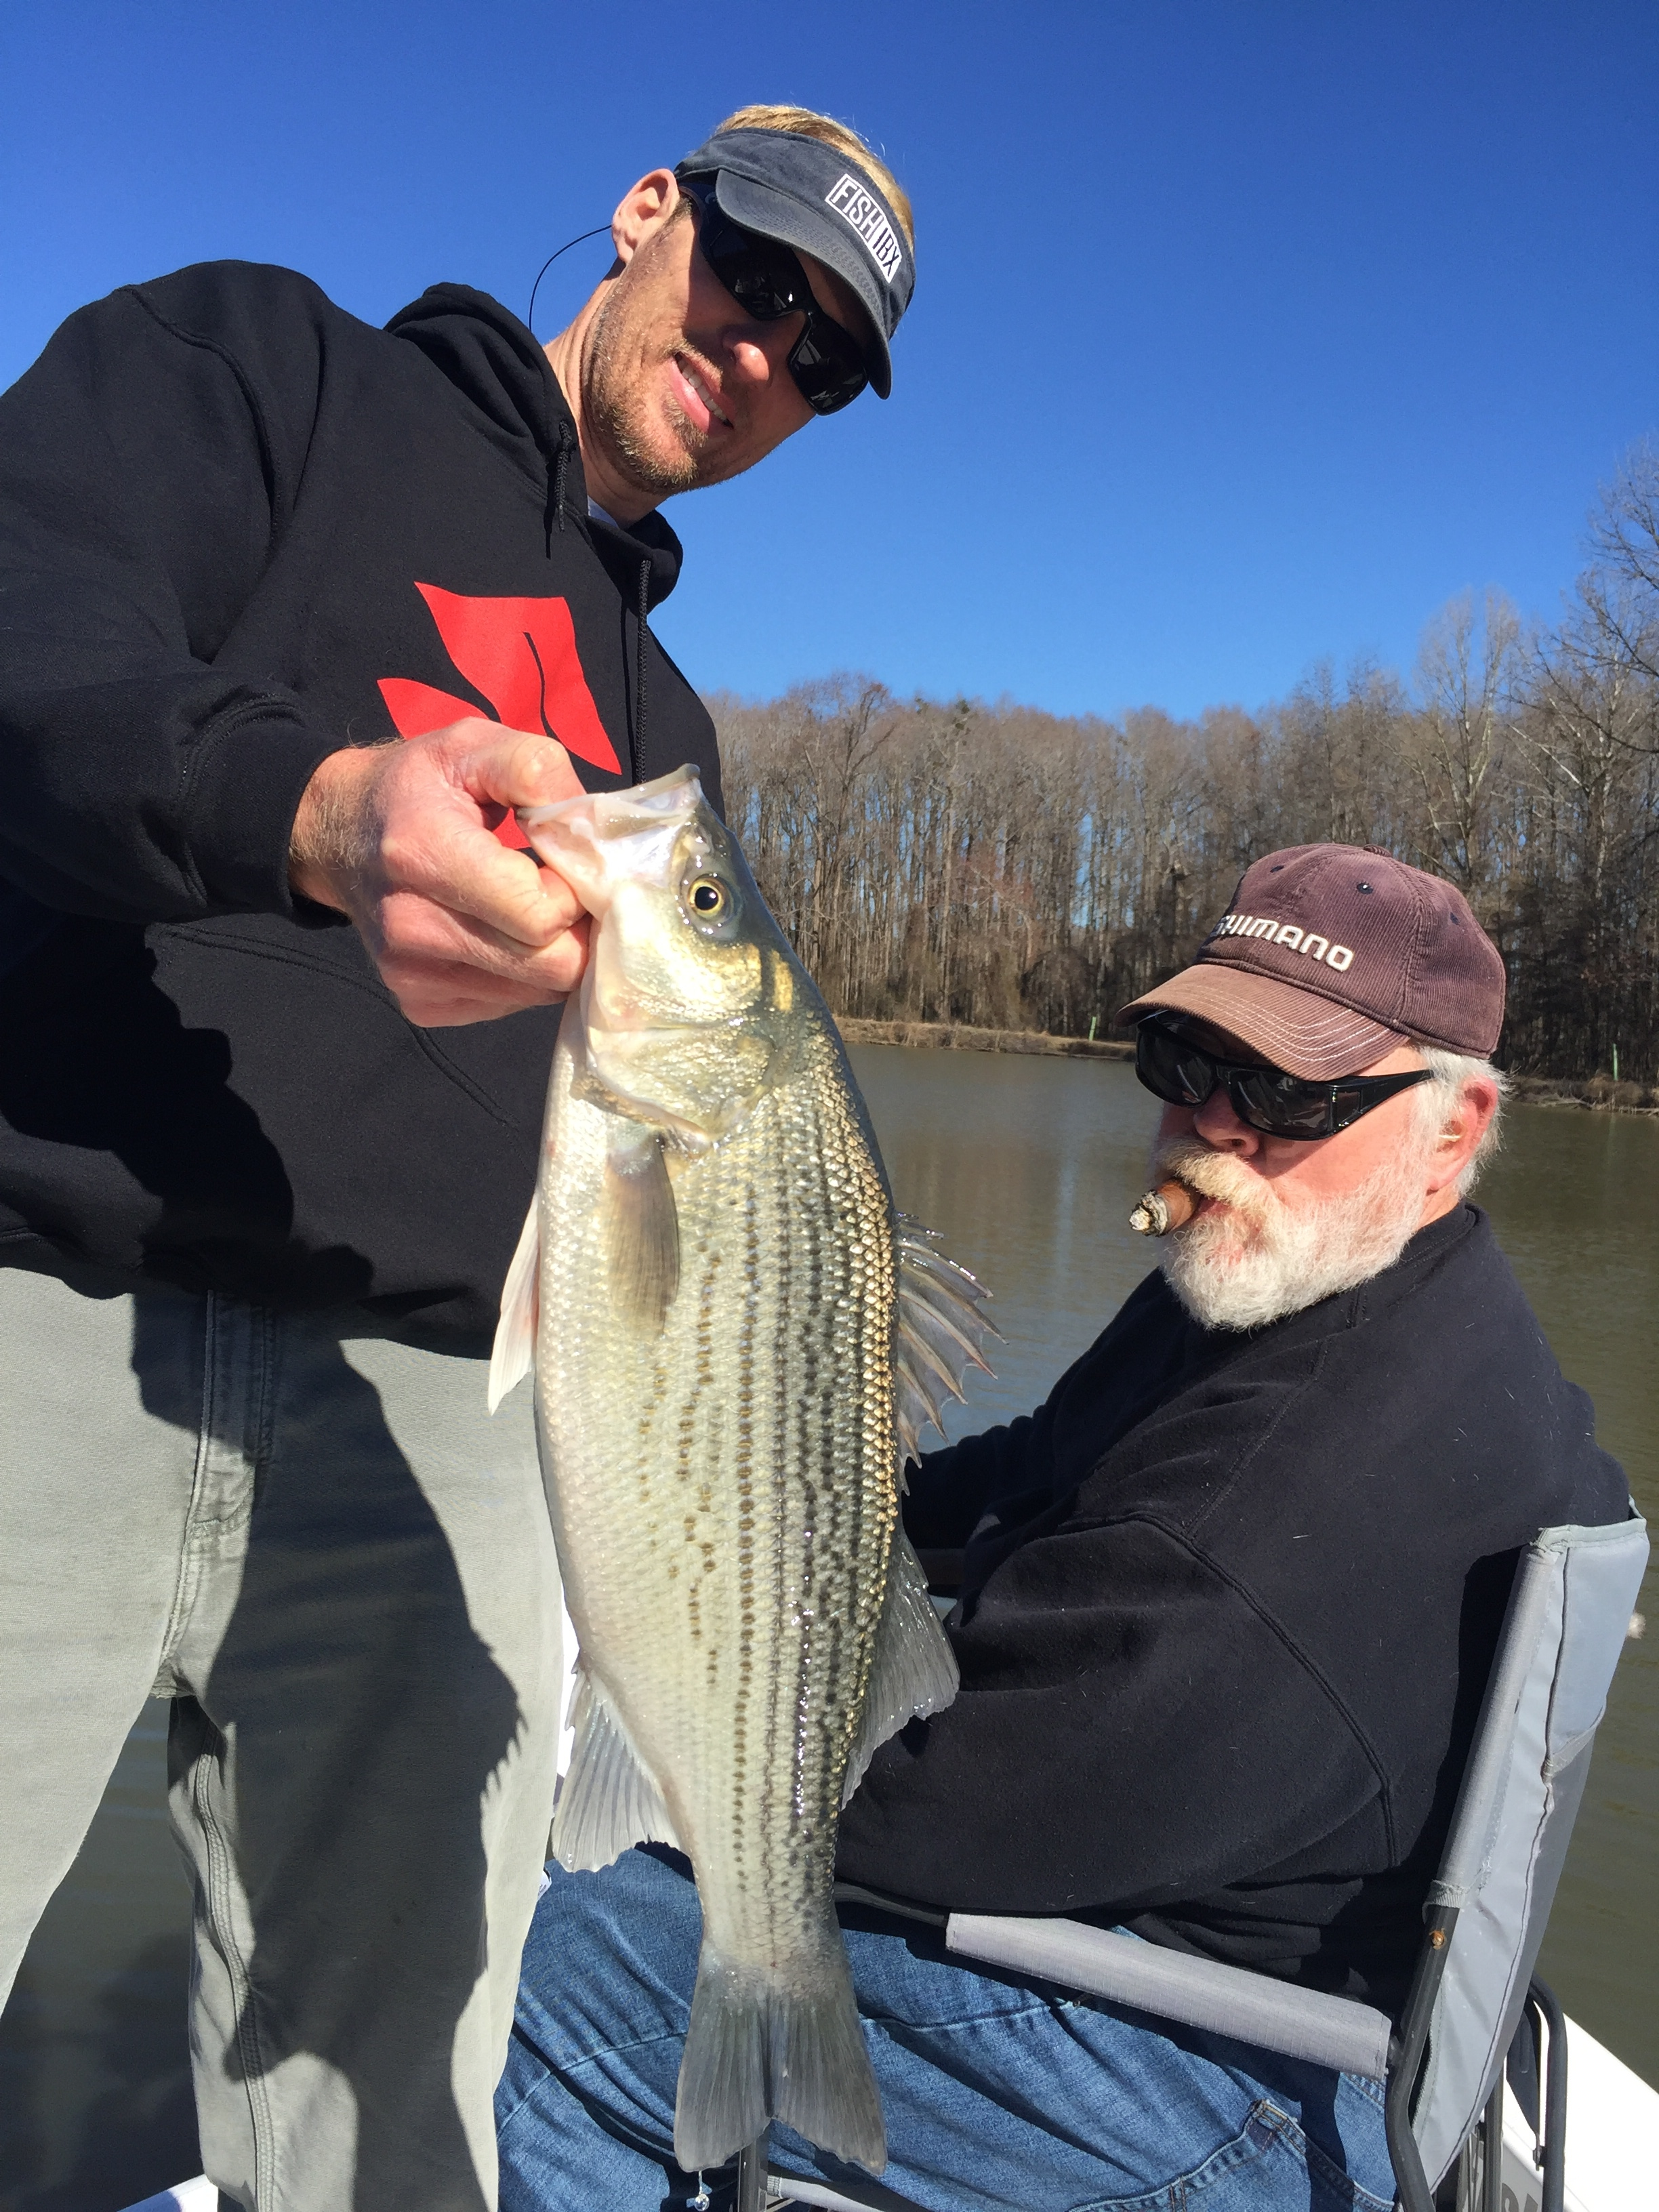 roanoke river nc mallards crappie stripers fishibx